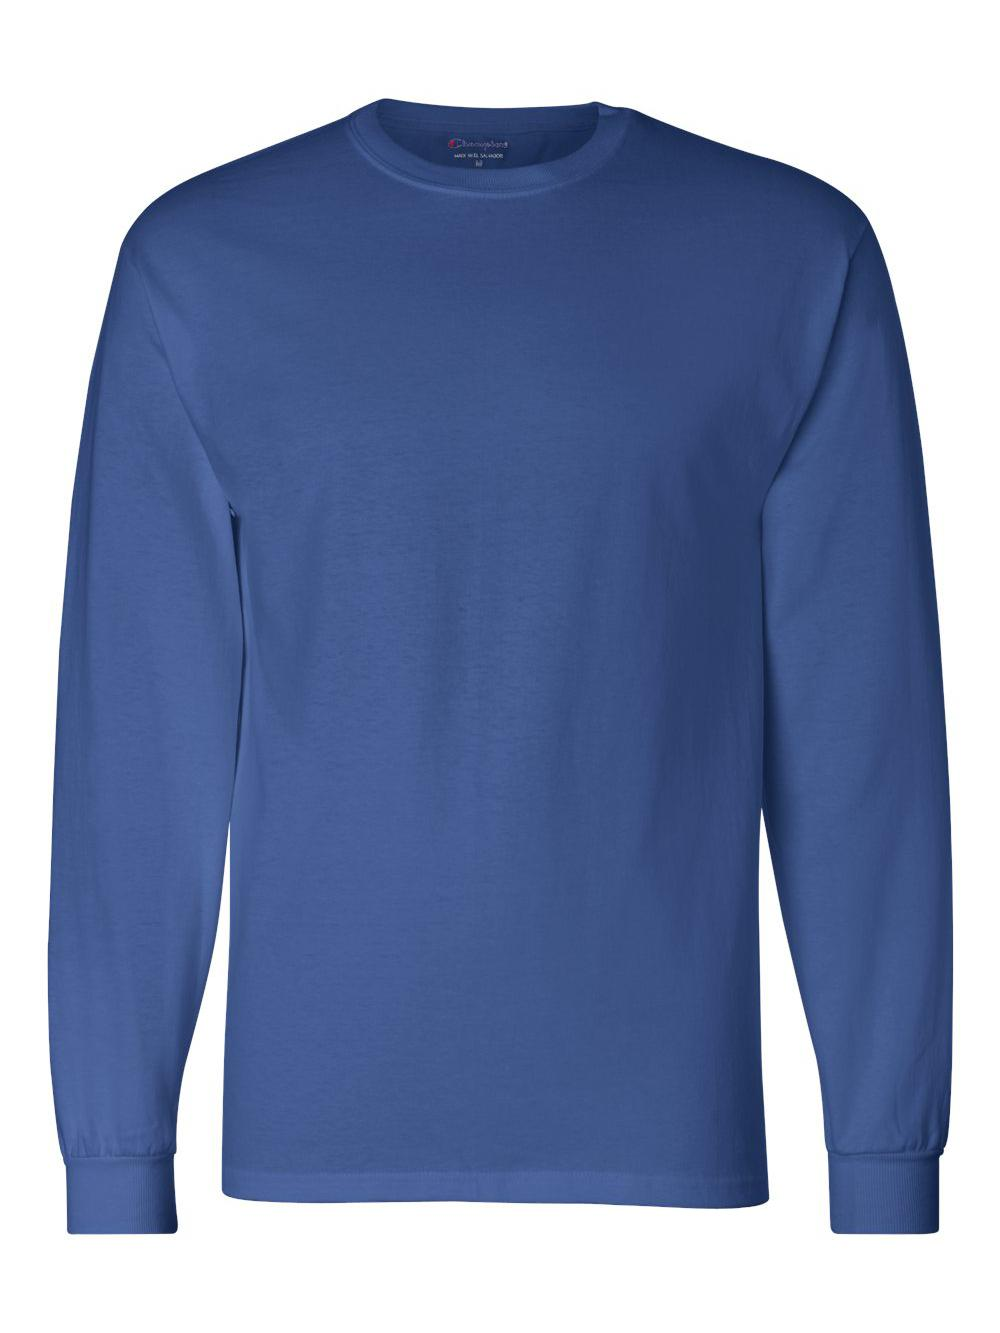 4fd9e5b5e2f4 Champion Cc8c Adult Long-sleeve T-shirt Royal Blue Medium for sale ...